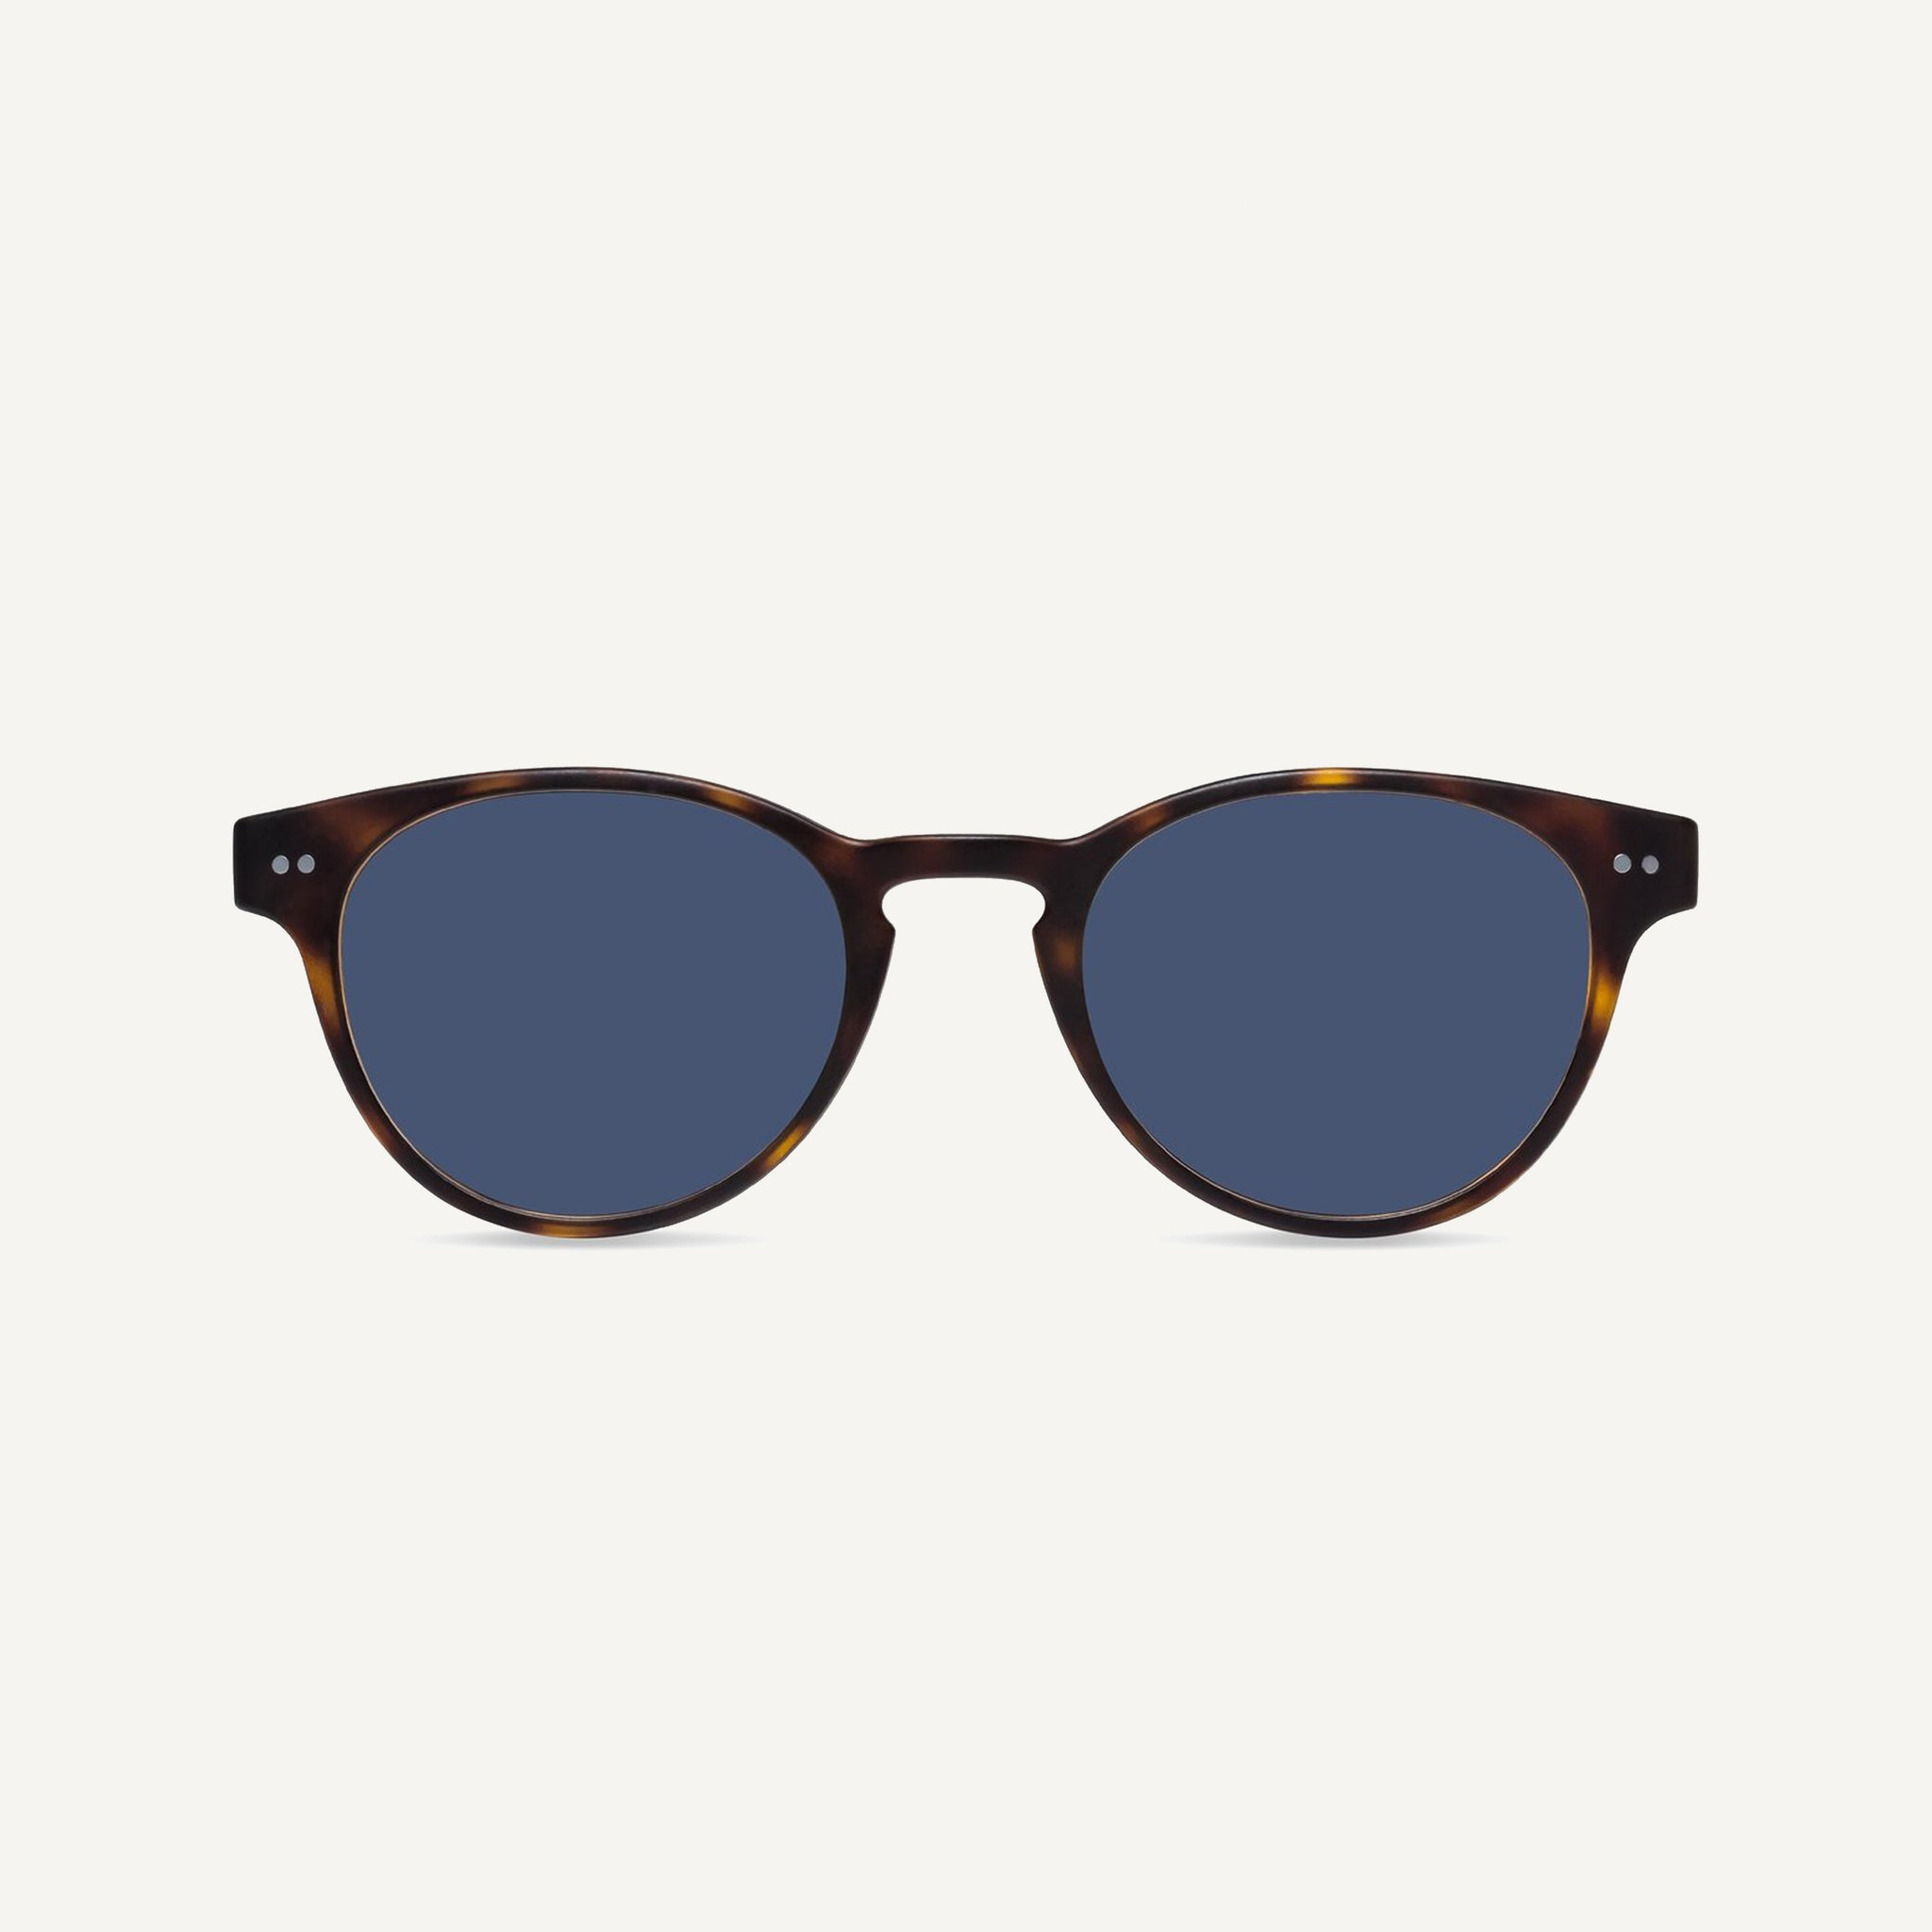 LOOK OPTIC ABBEY SUNGLASSES